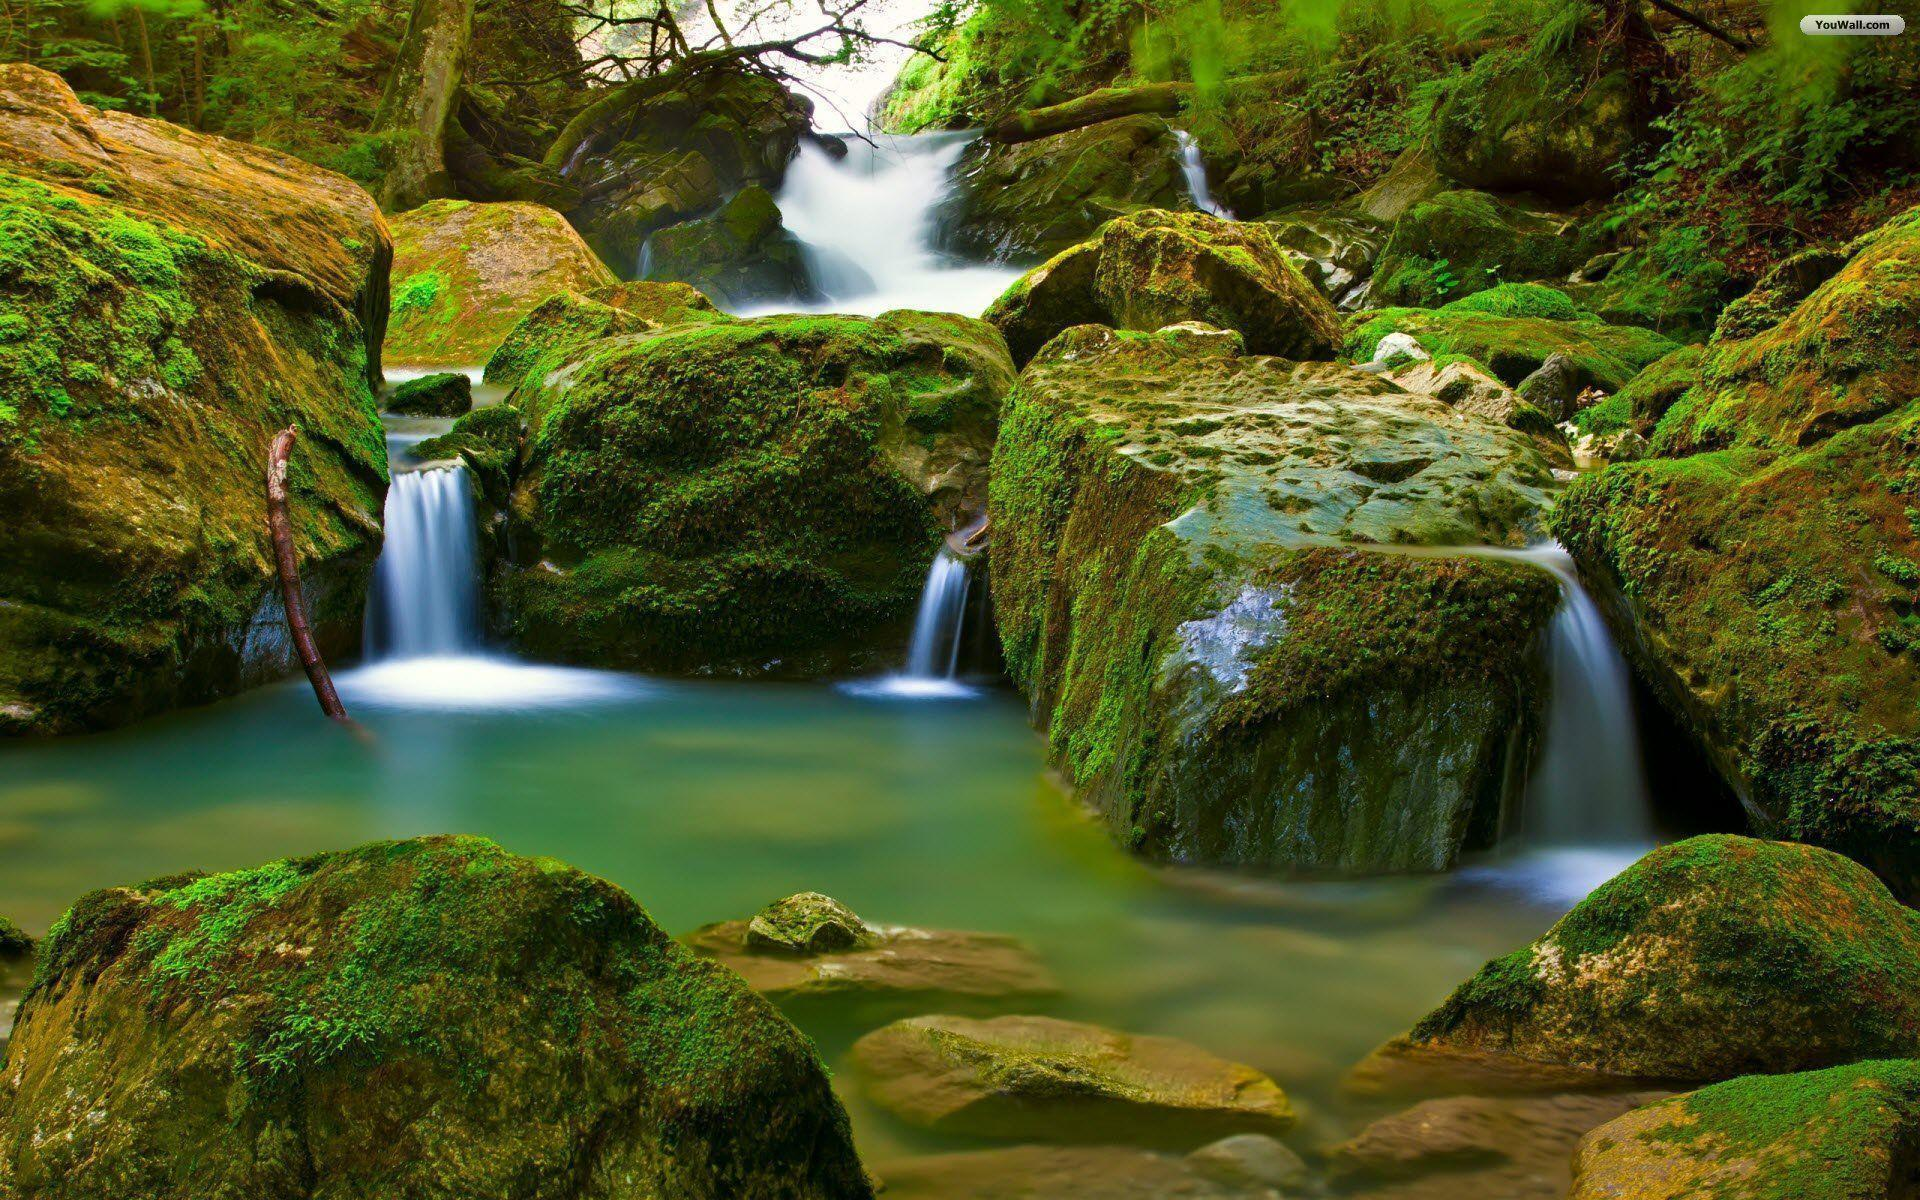 Beautiful Waterfalls Wallpapers Download 1920x1200PX ~ Wallpapers